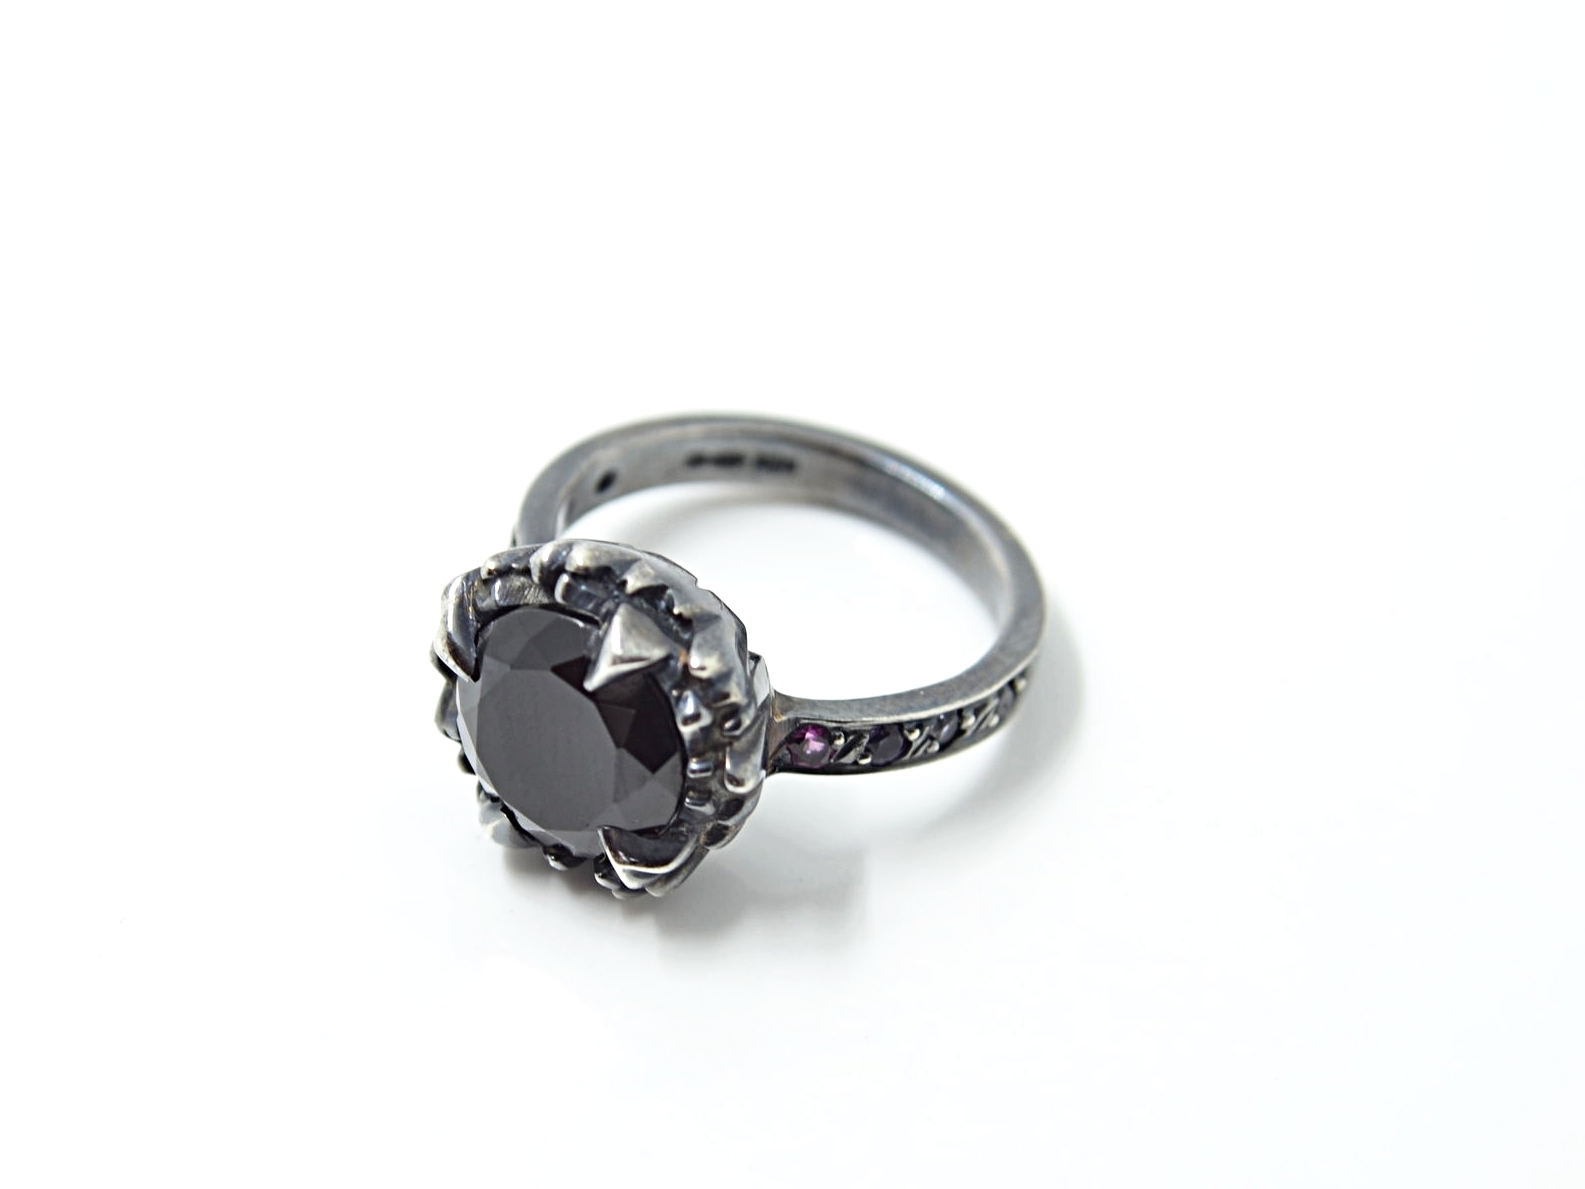 Black Spinel Uncover Ring with Ruby, Amethyst, Sapphire and Spinel Details